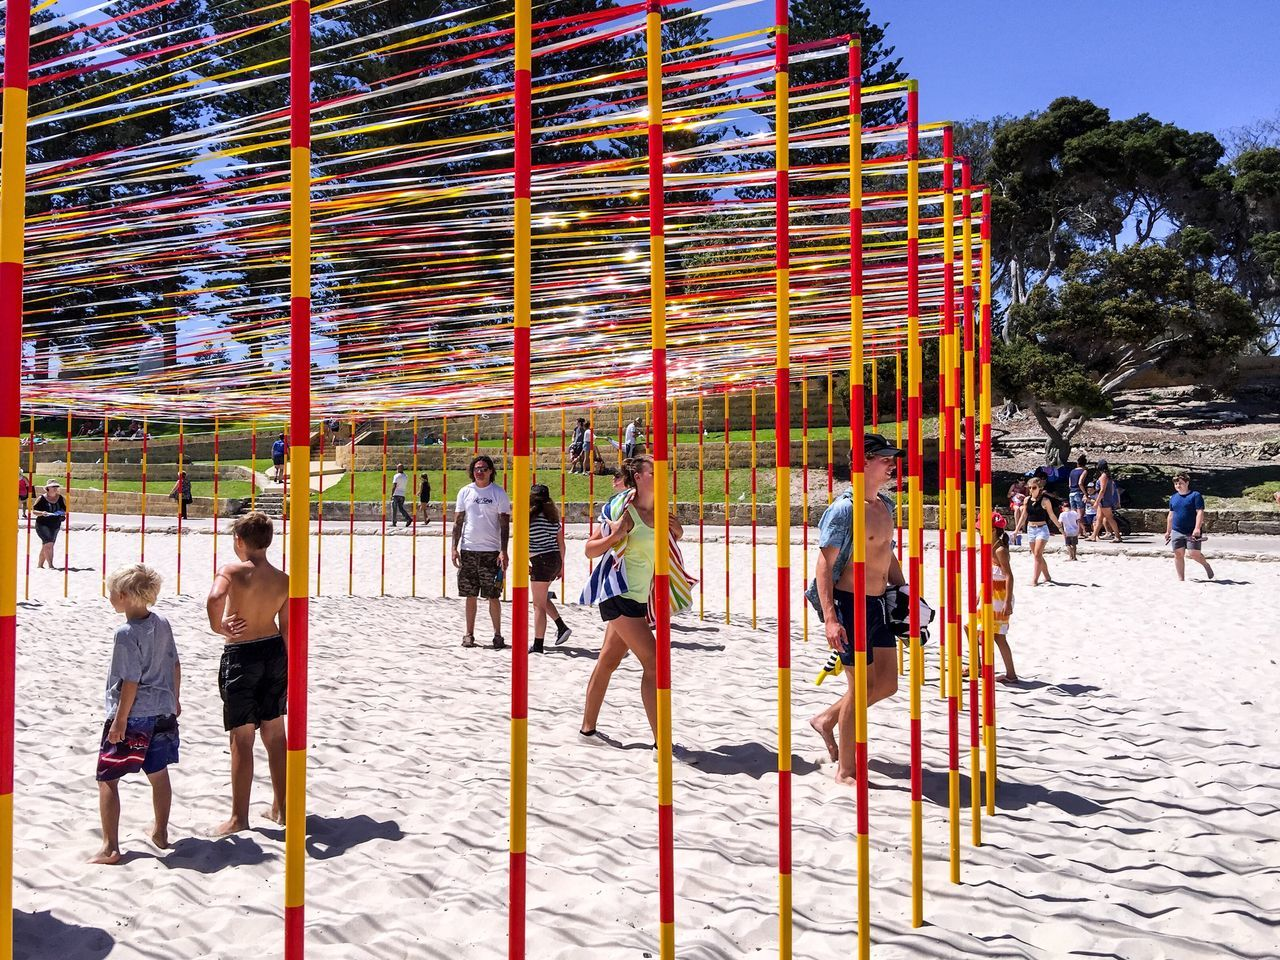 Interactive Arts Festival: Sculptures by the Sea 2016 Poles Ribbons Colorful Red Yellow Striped Pattern Arts Festivals Tourist Attraction  Sculpture Western Australia Cottesloe Beach ArtWork Sculptures By The Sea Interactive  March 12,2016 Arts Culture And Entertainment Sand Tourists Beach Abstract Families Pattern Circular Fun Modern Art